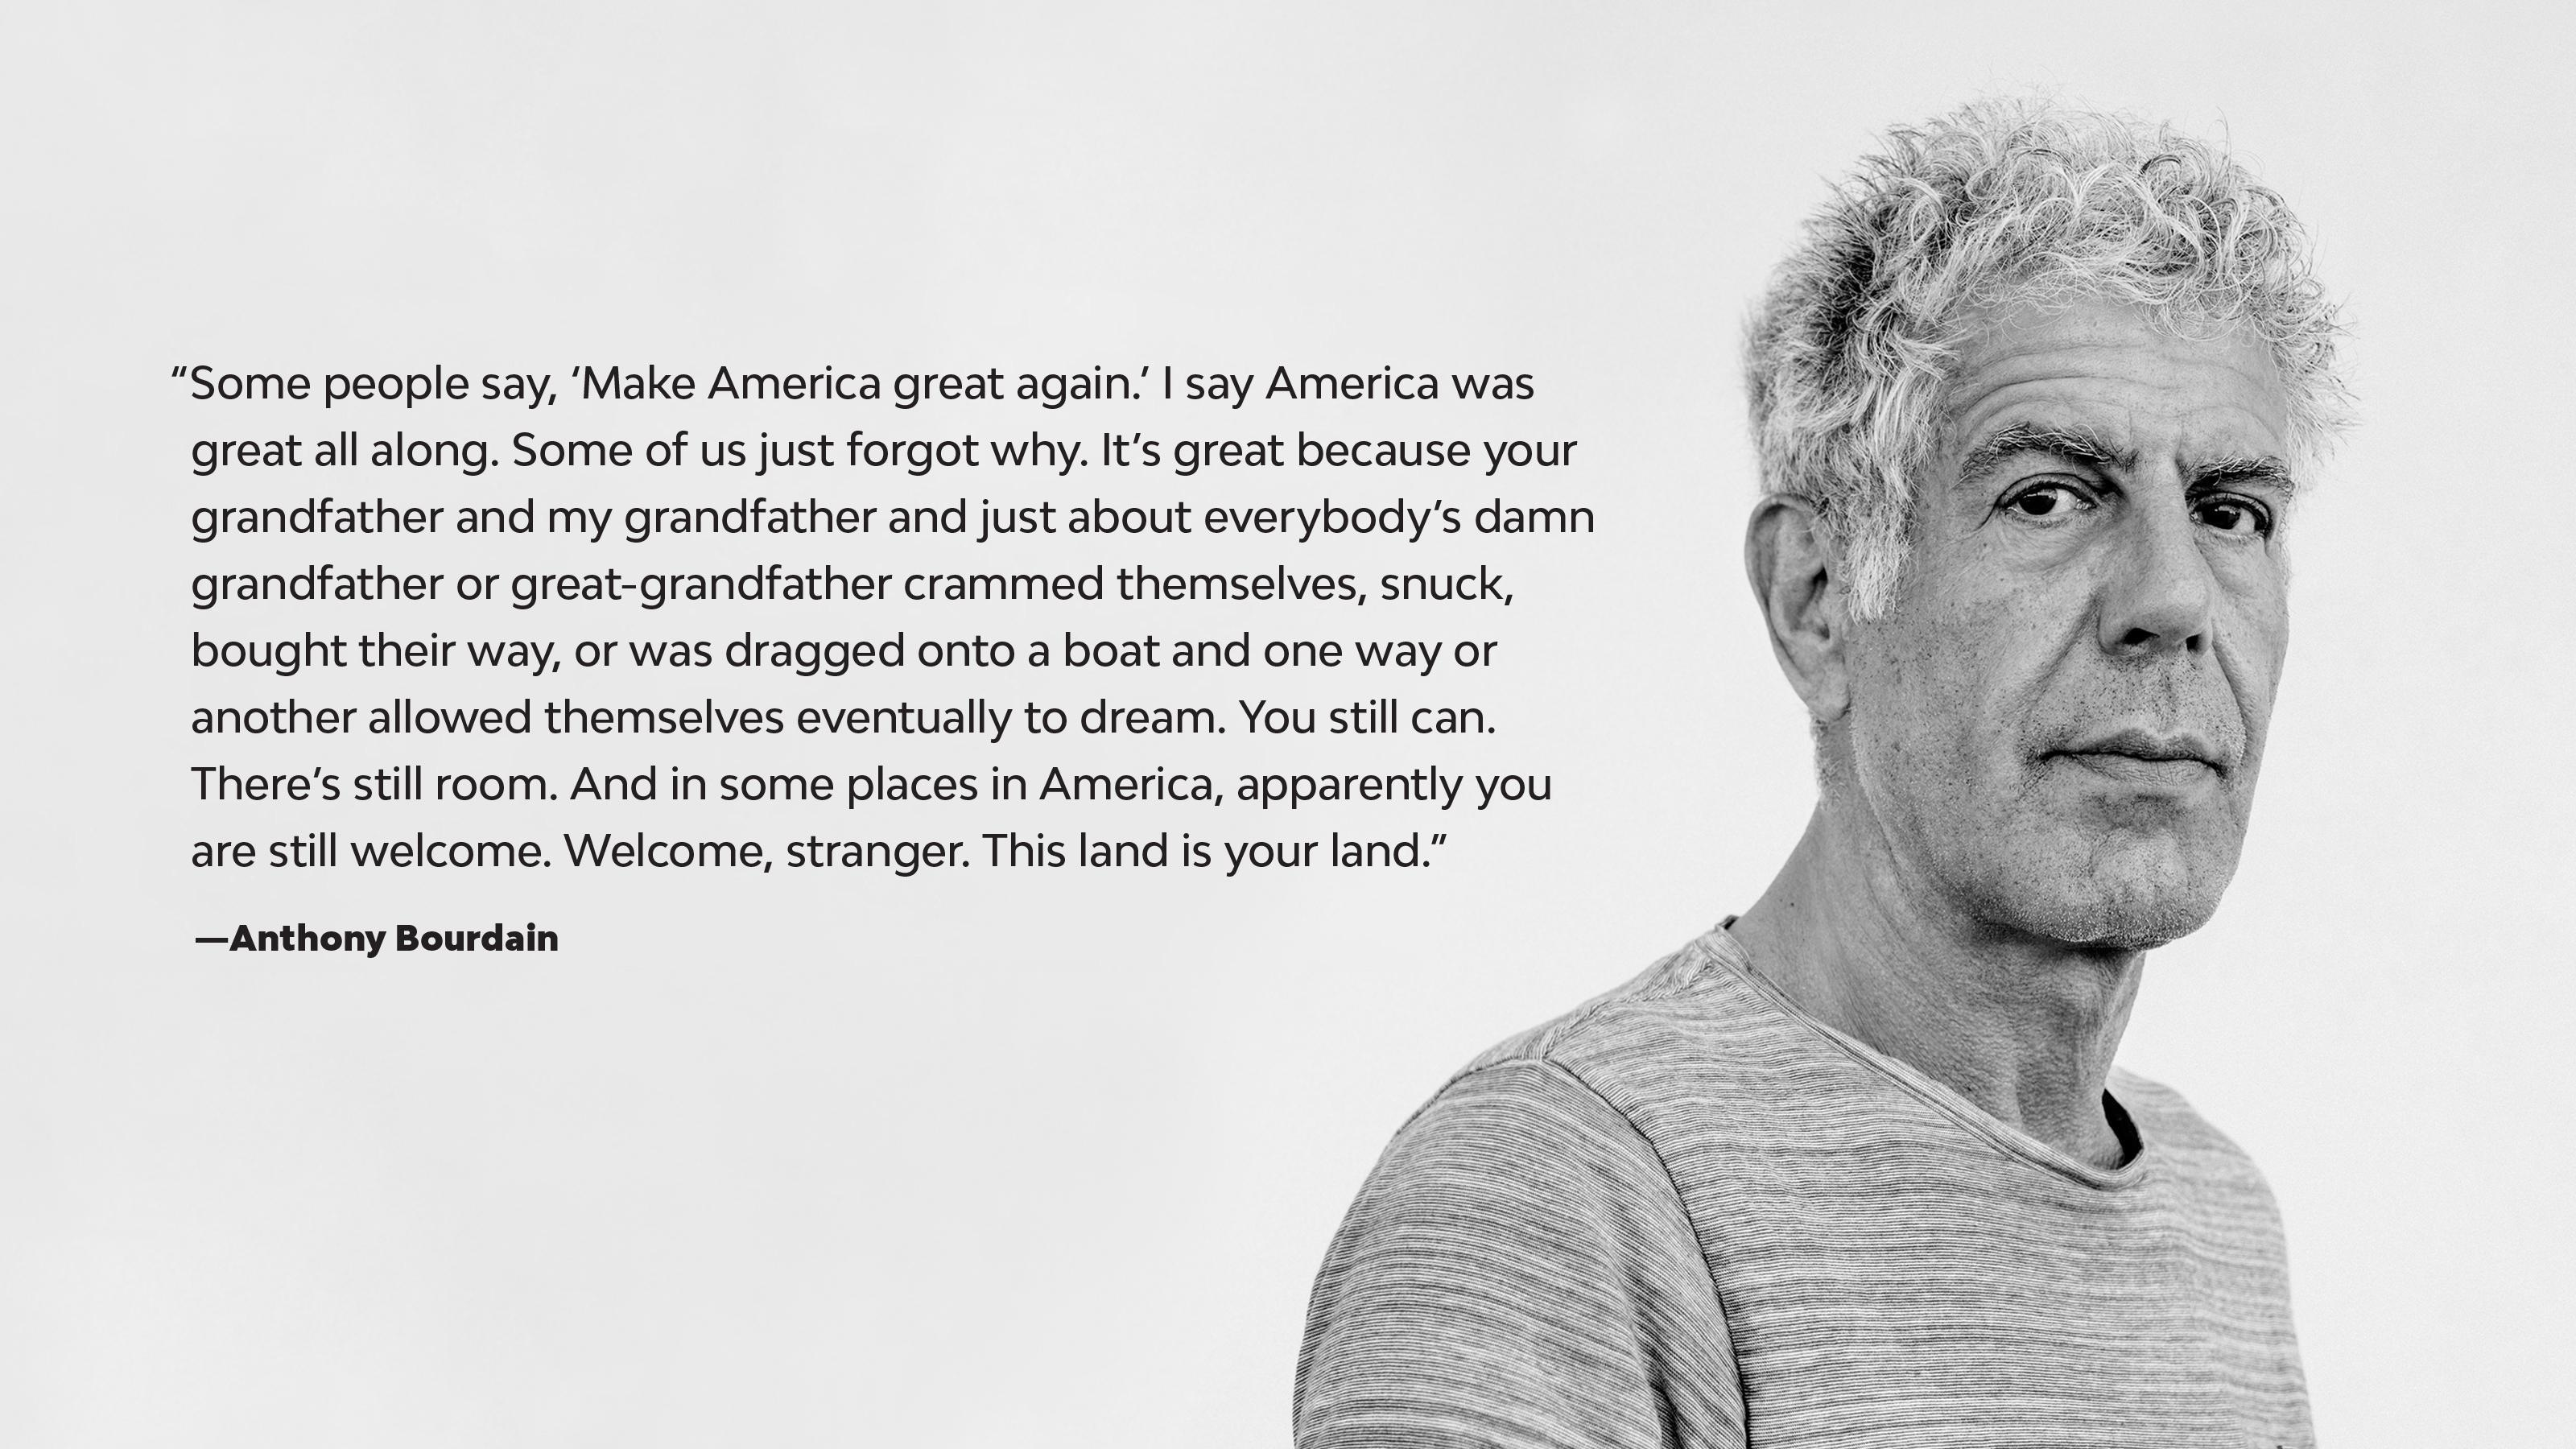 """Some people say, 'Make America great again.' I say America was great all along. Some of us just forgot why."" —Anthony Bourdain [3200×1800]"